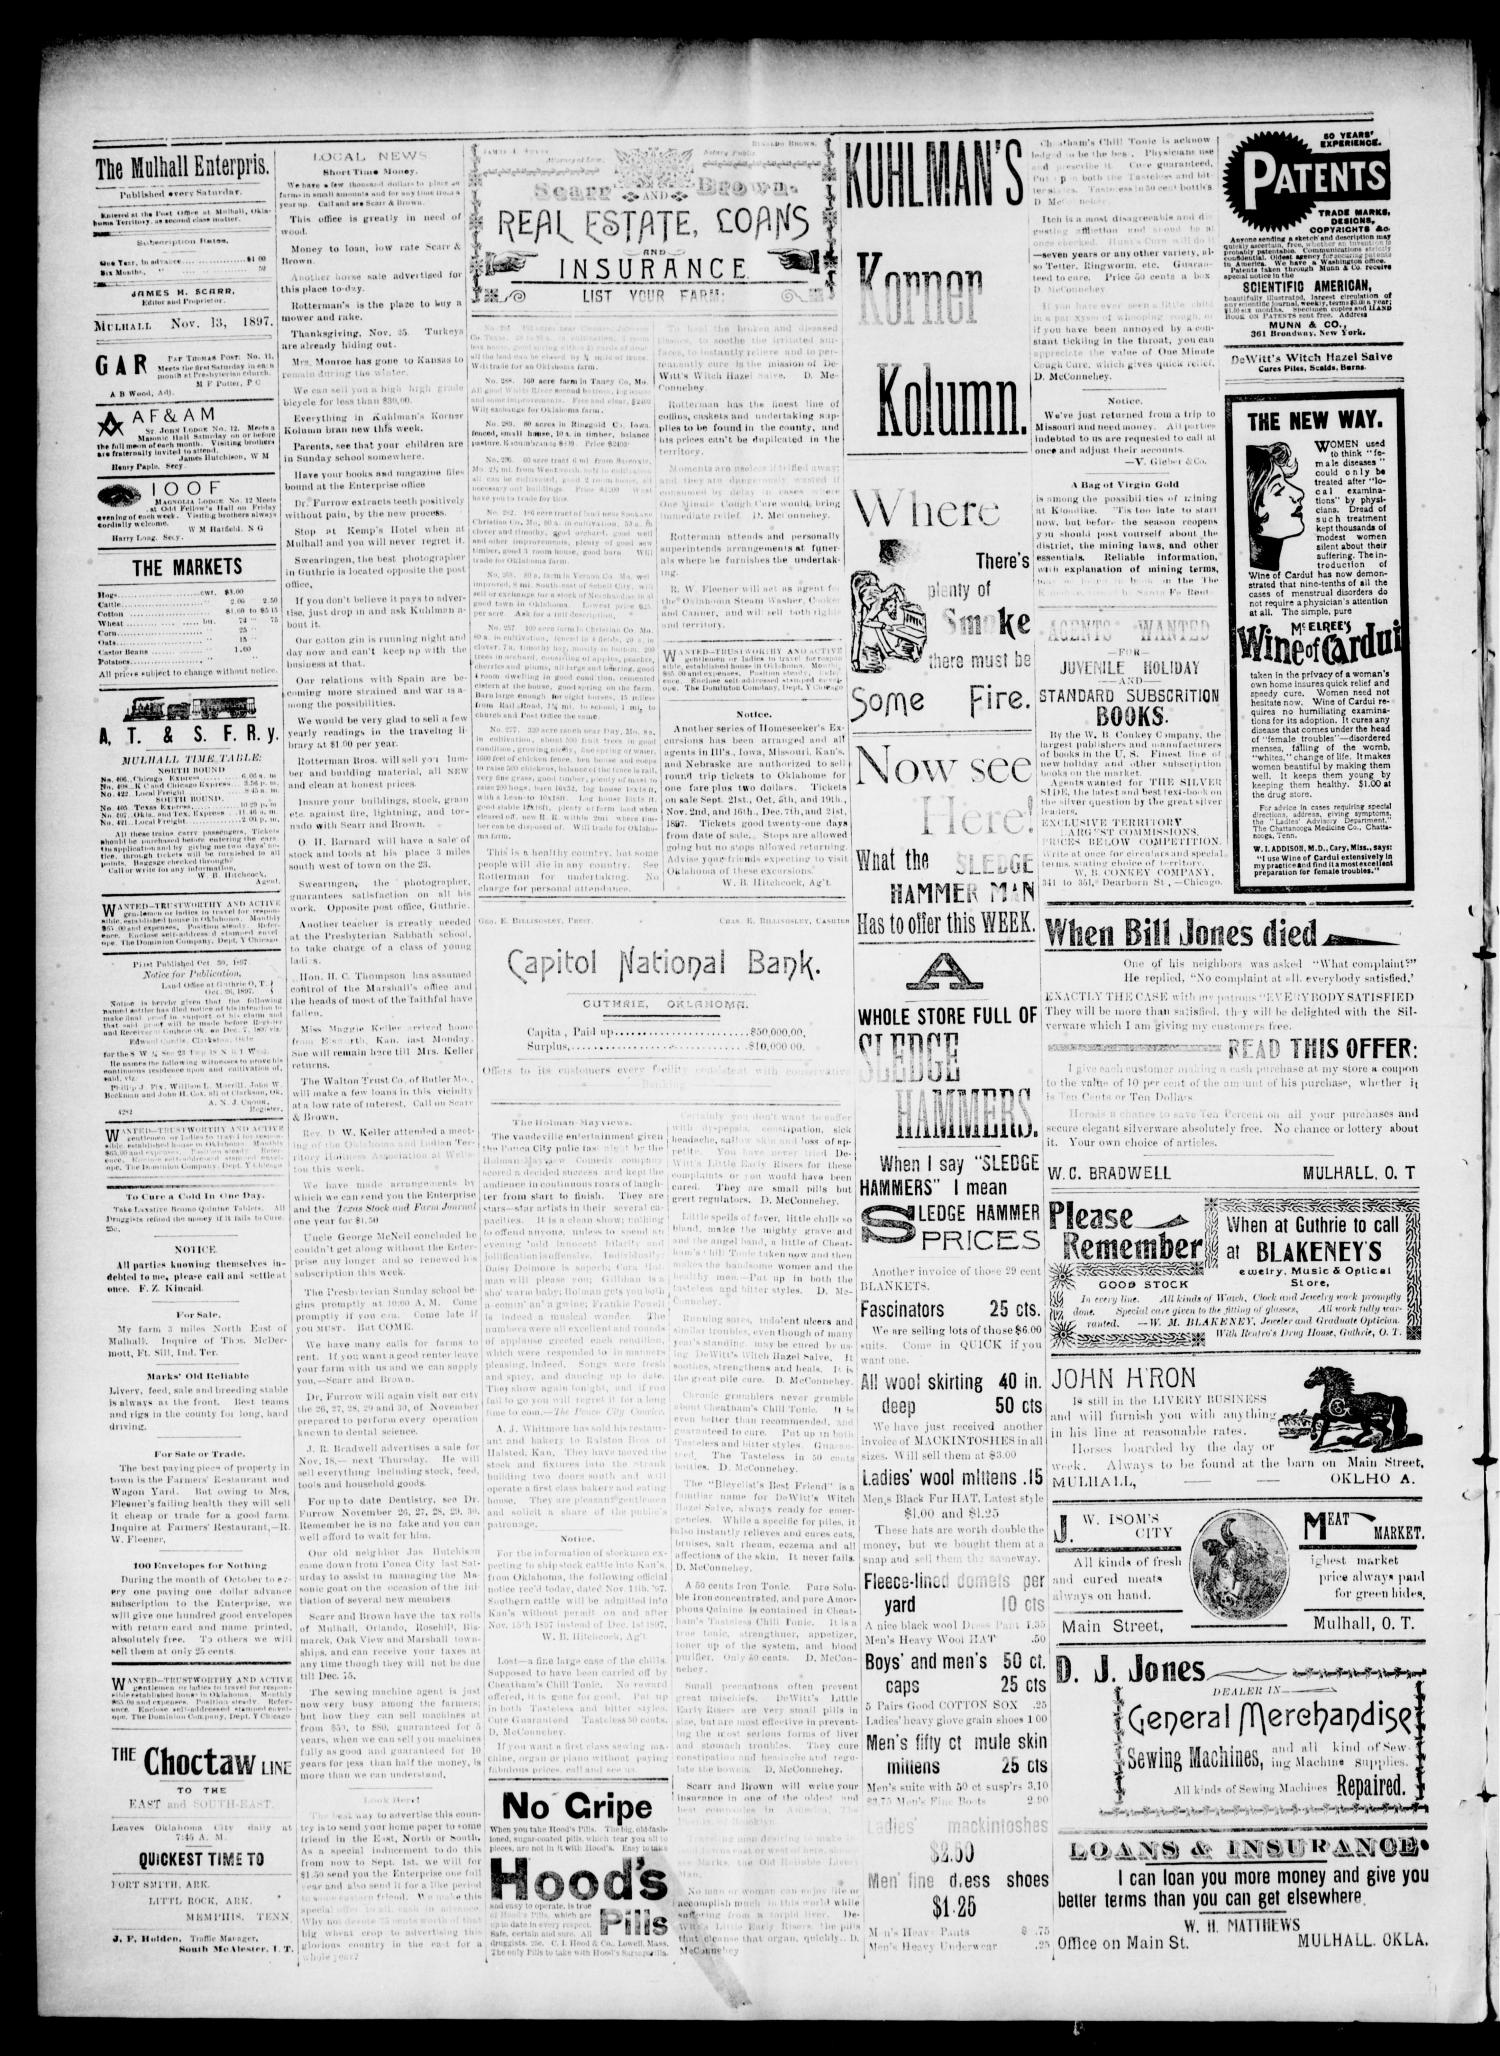 The Mulhall Enterprise. (Mulhall, Okla. Terr.), Vol. 4, No. 45, Ed. 1 Saturday, November 13, 1897                                                                                                      [Sequence #]: 4 of 4